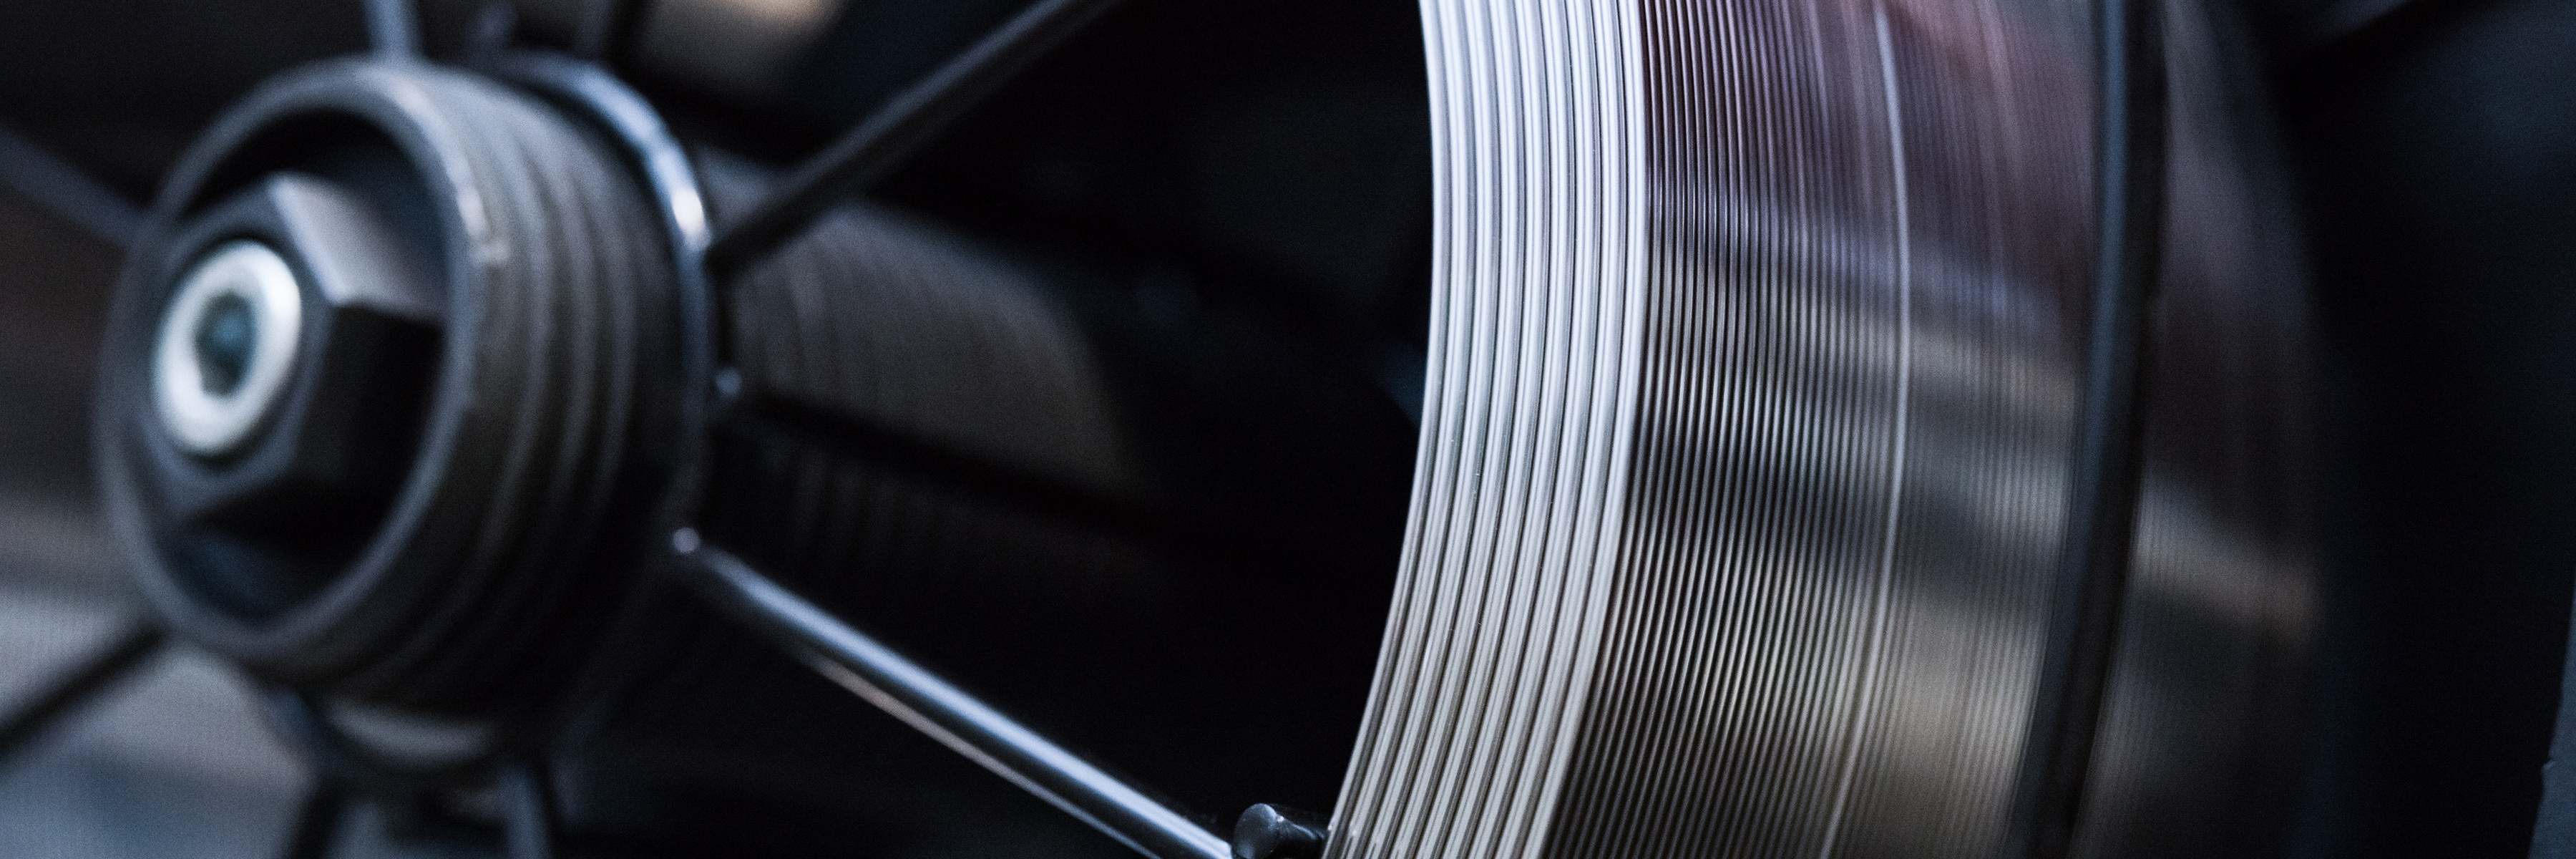 Shielding gases for welding and their effects on stainless steel properties